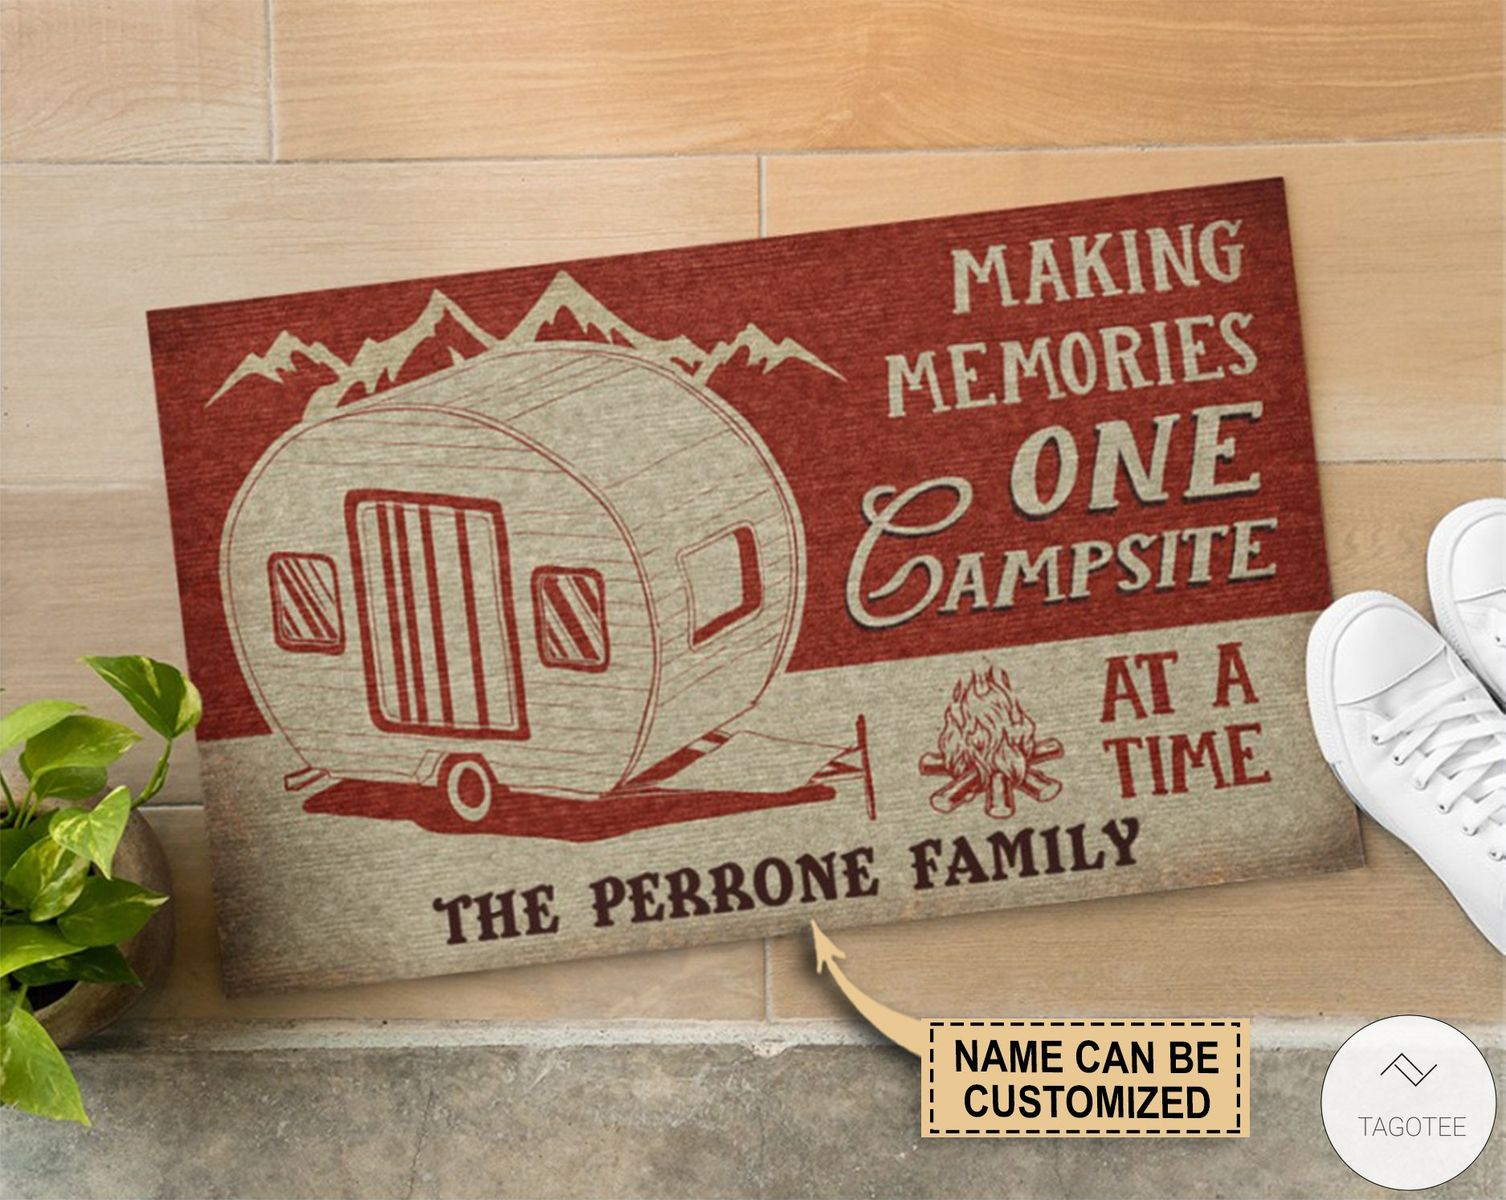 Personalized Making Memories One Campsite At A Time Doormatz